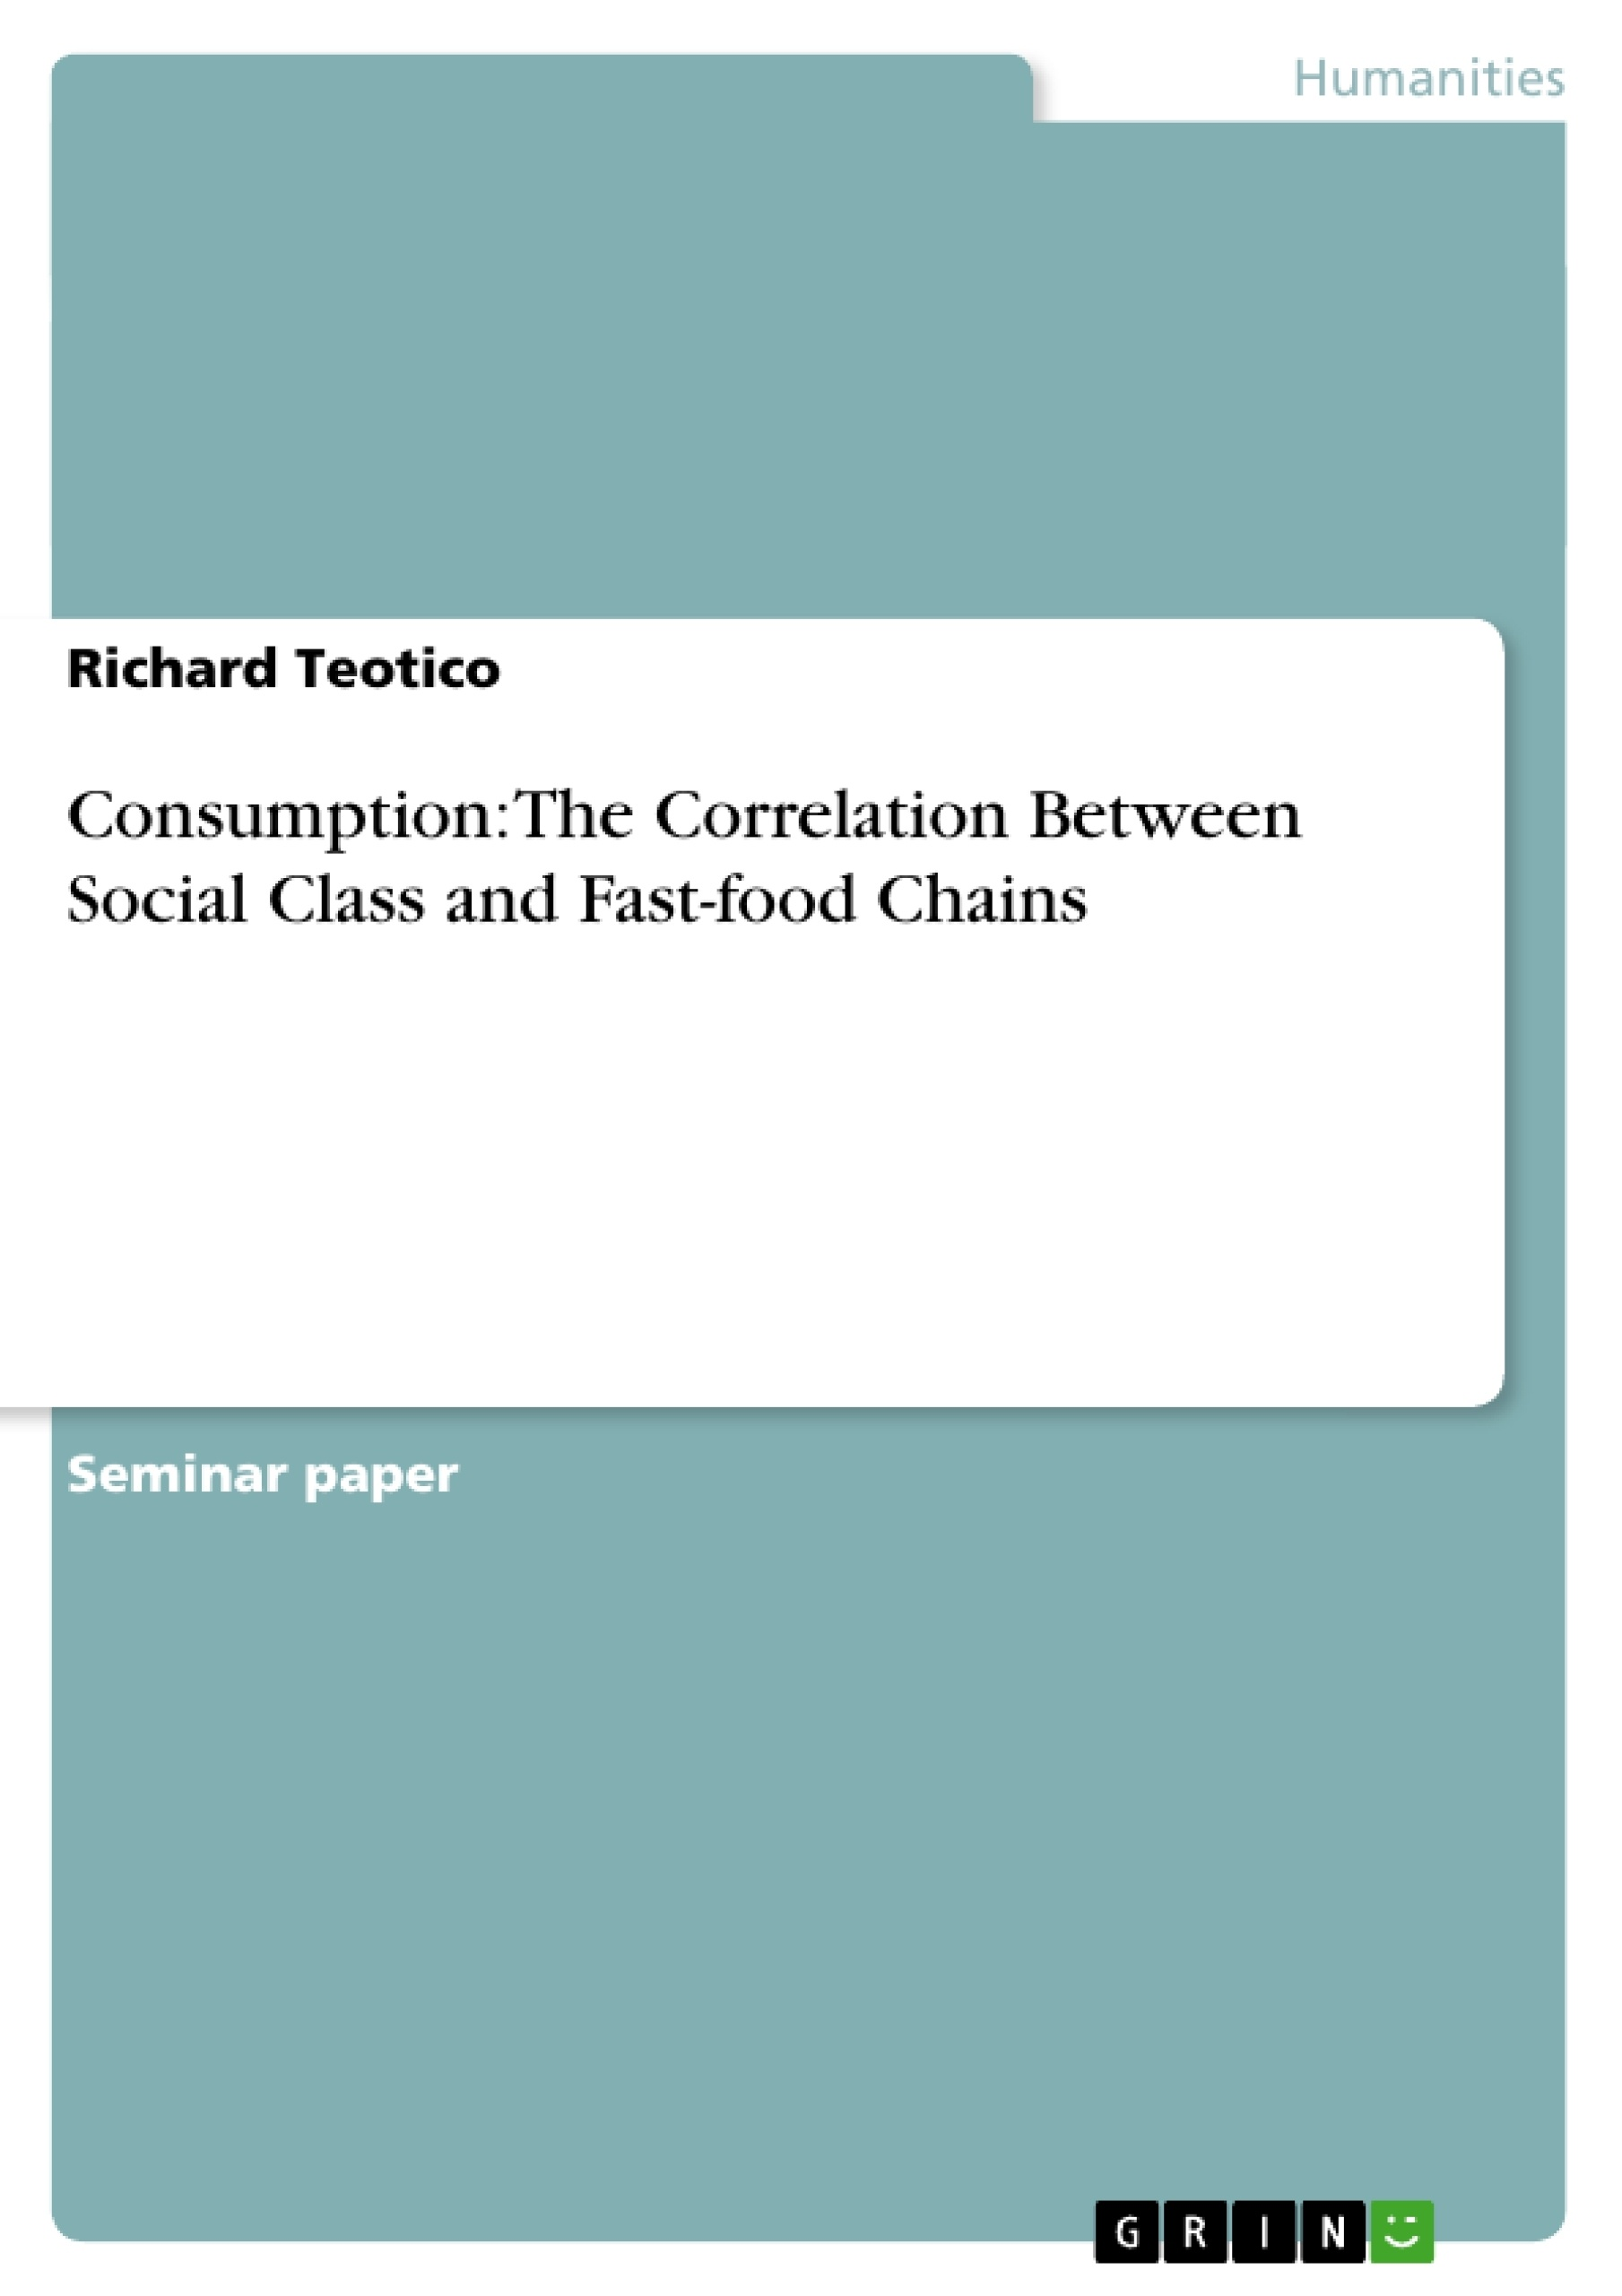 Title: Consumption: The Correlation Between Social Class and Fast-food Chains